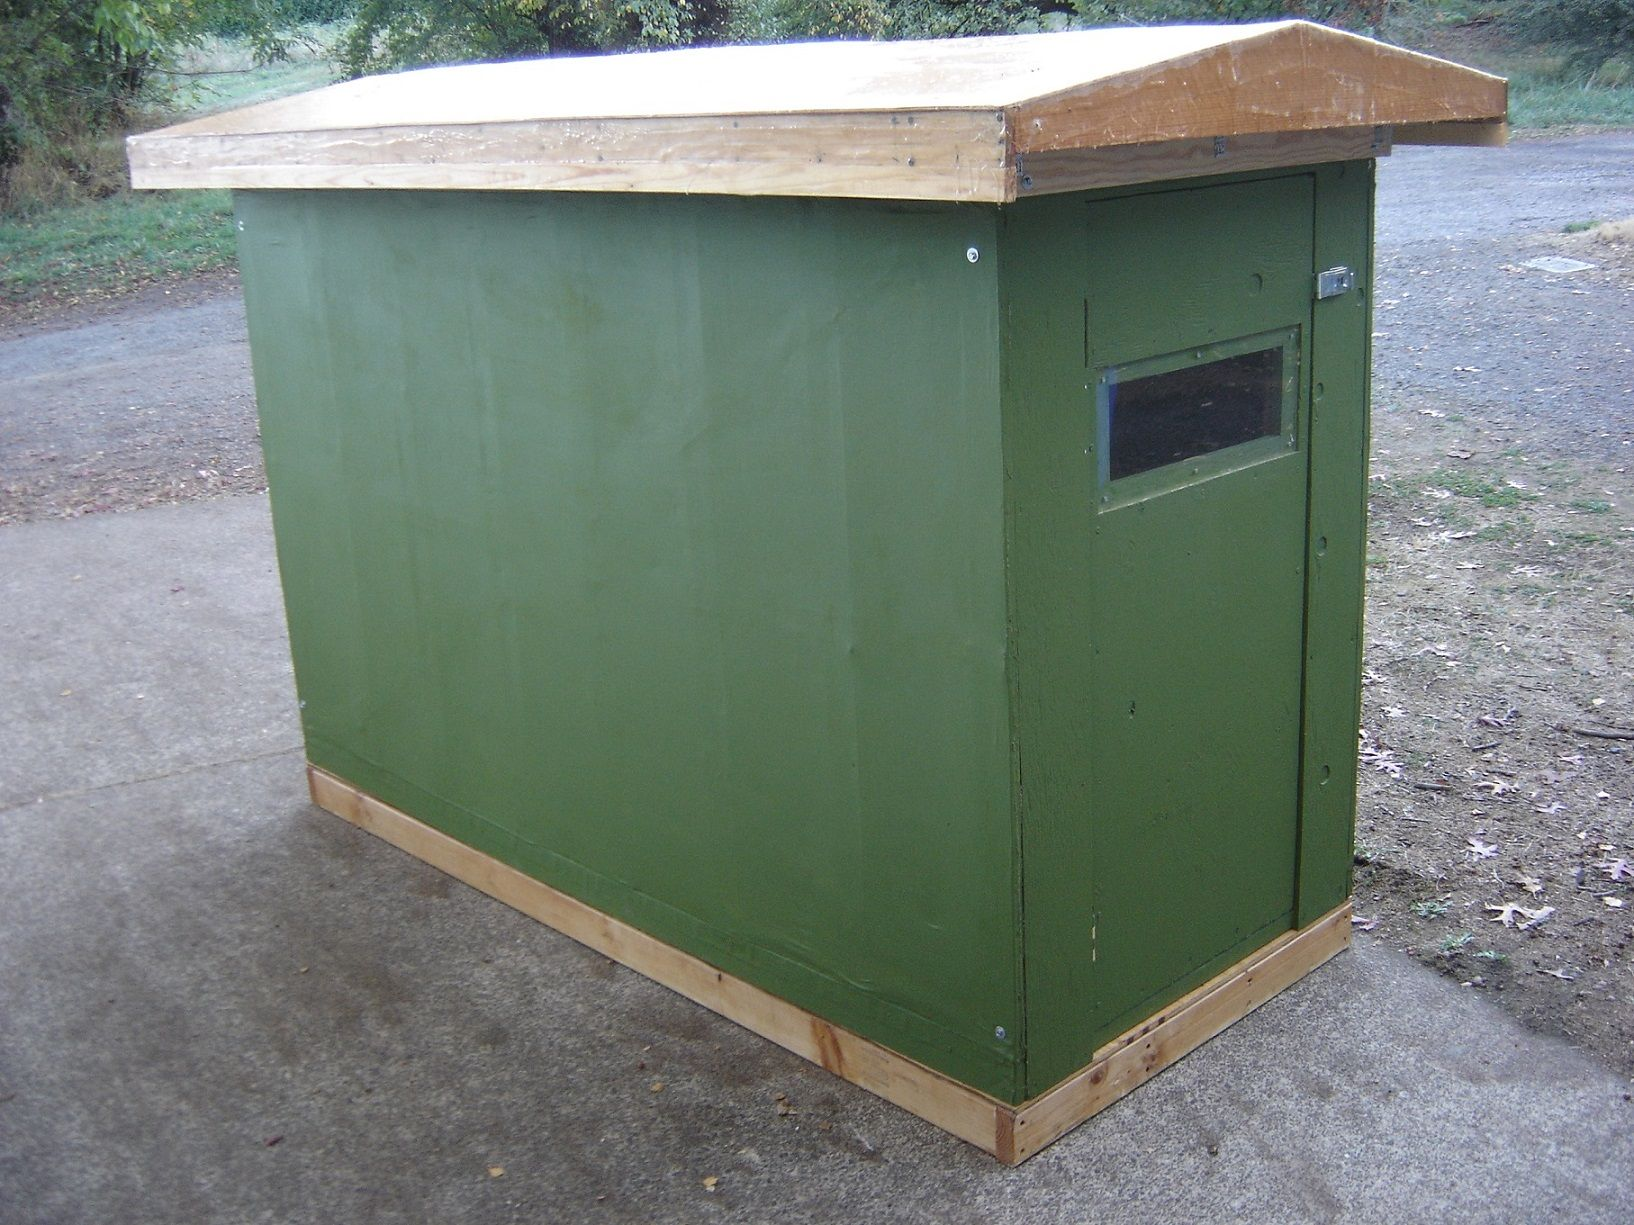 Warmpod Empowers Communities To Provide Portable Disaster Proof Shelter For The Homeless Homeless Shelter Homeless Shelter Ideas Portable Shelter